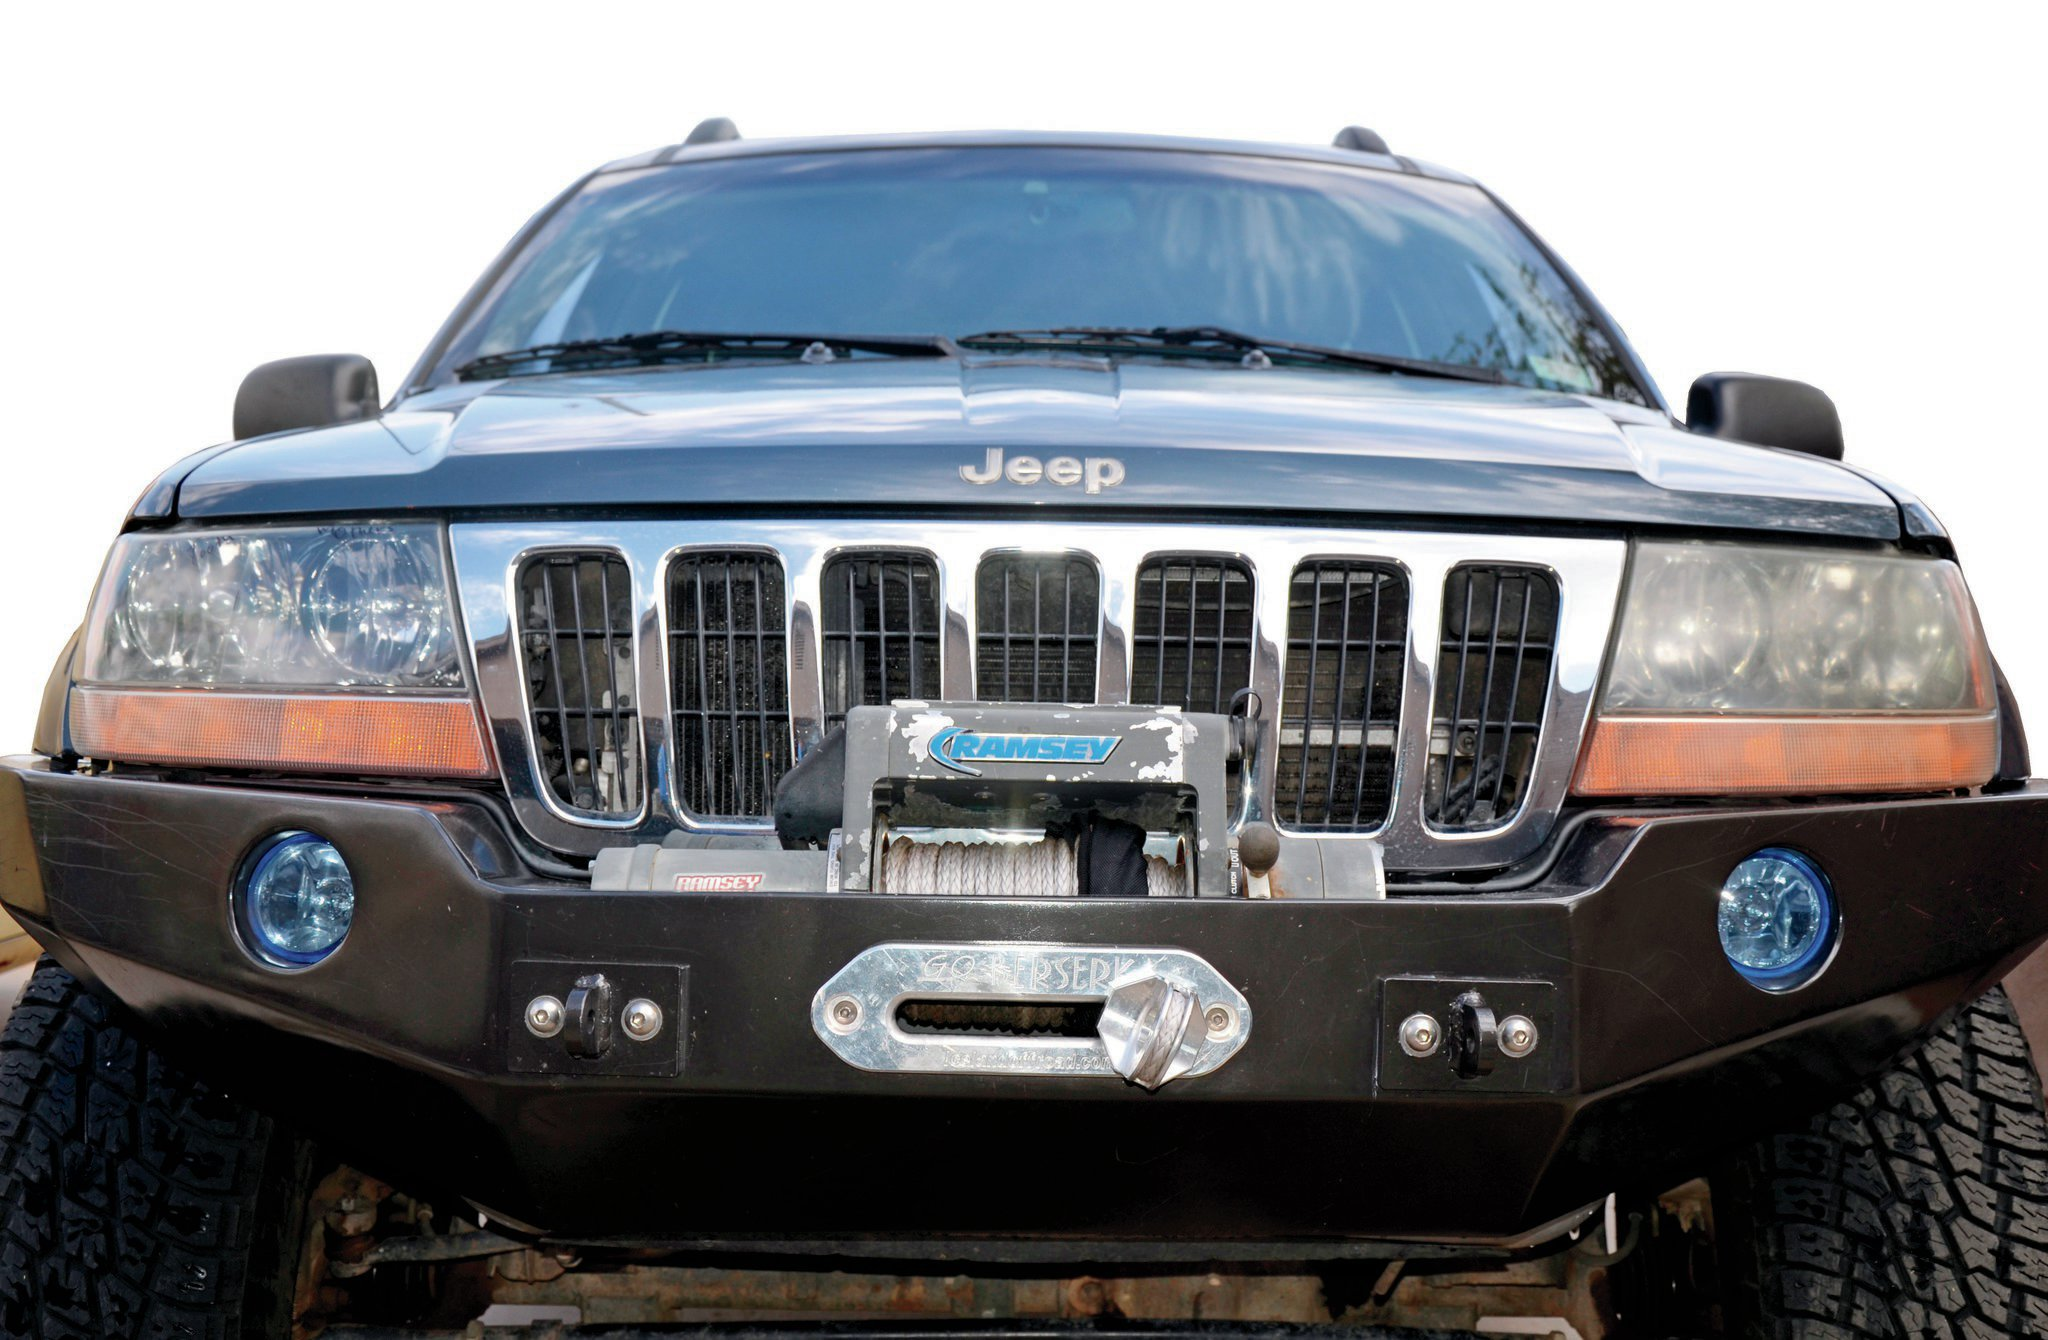 2001 Jeep Grand Cherokee WJ front view